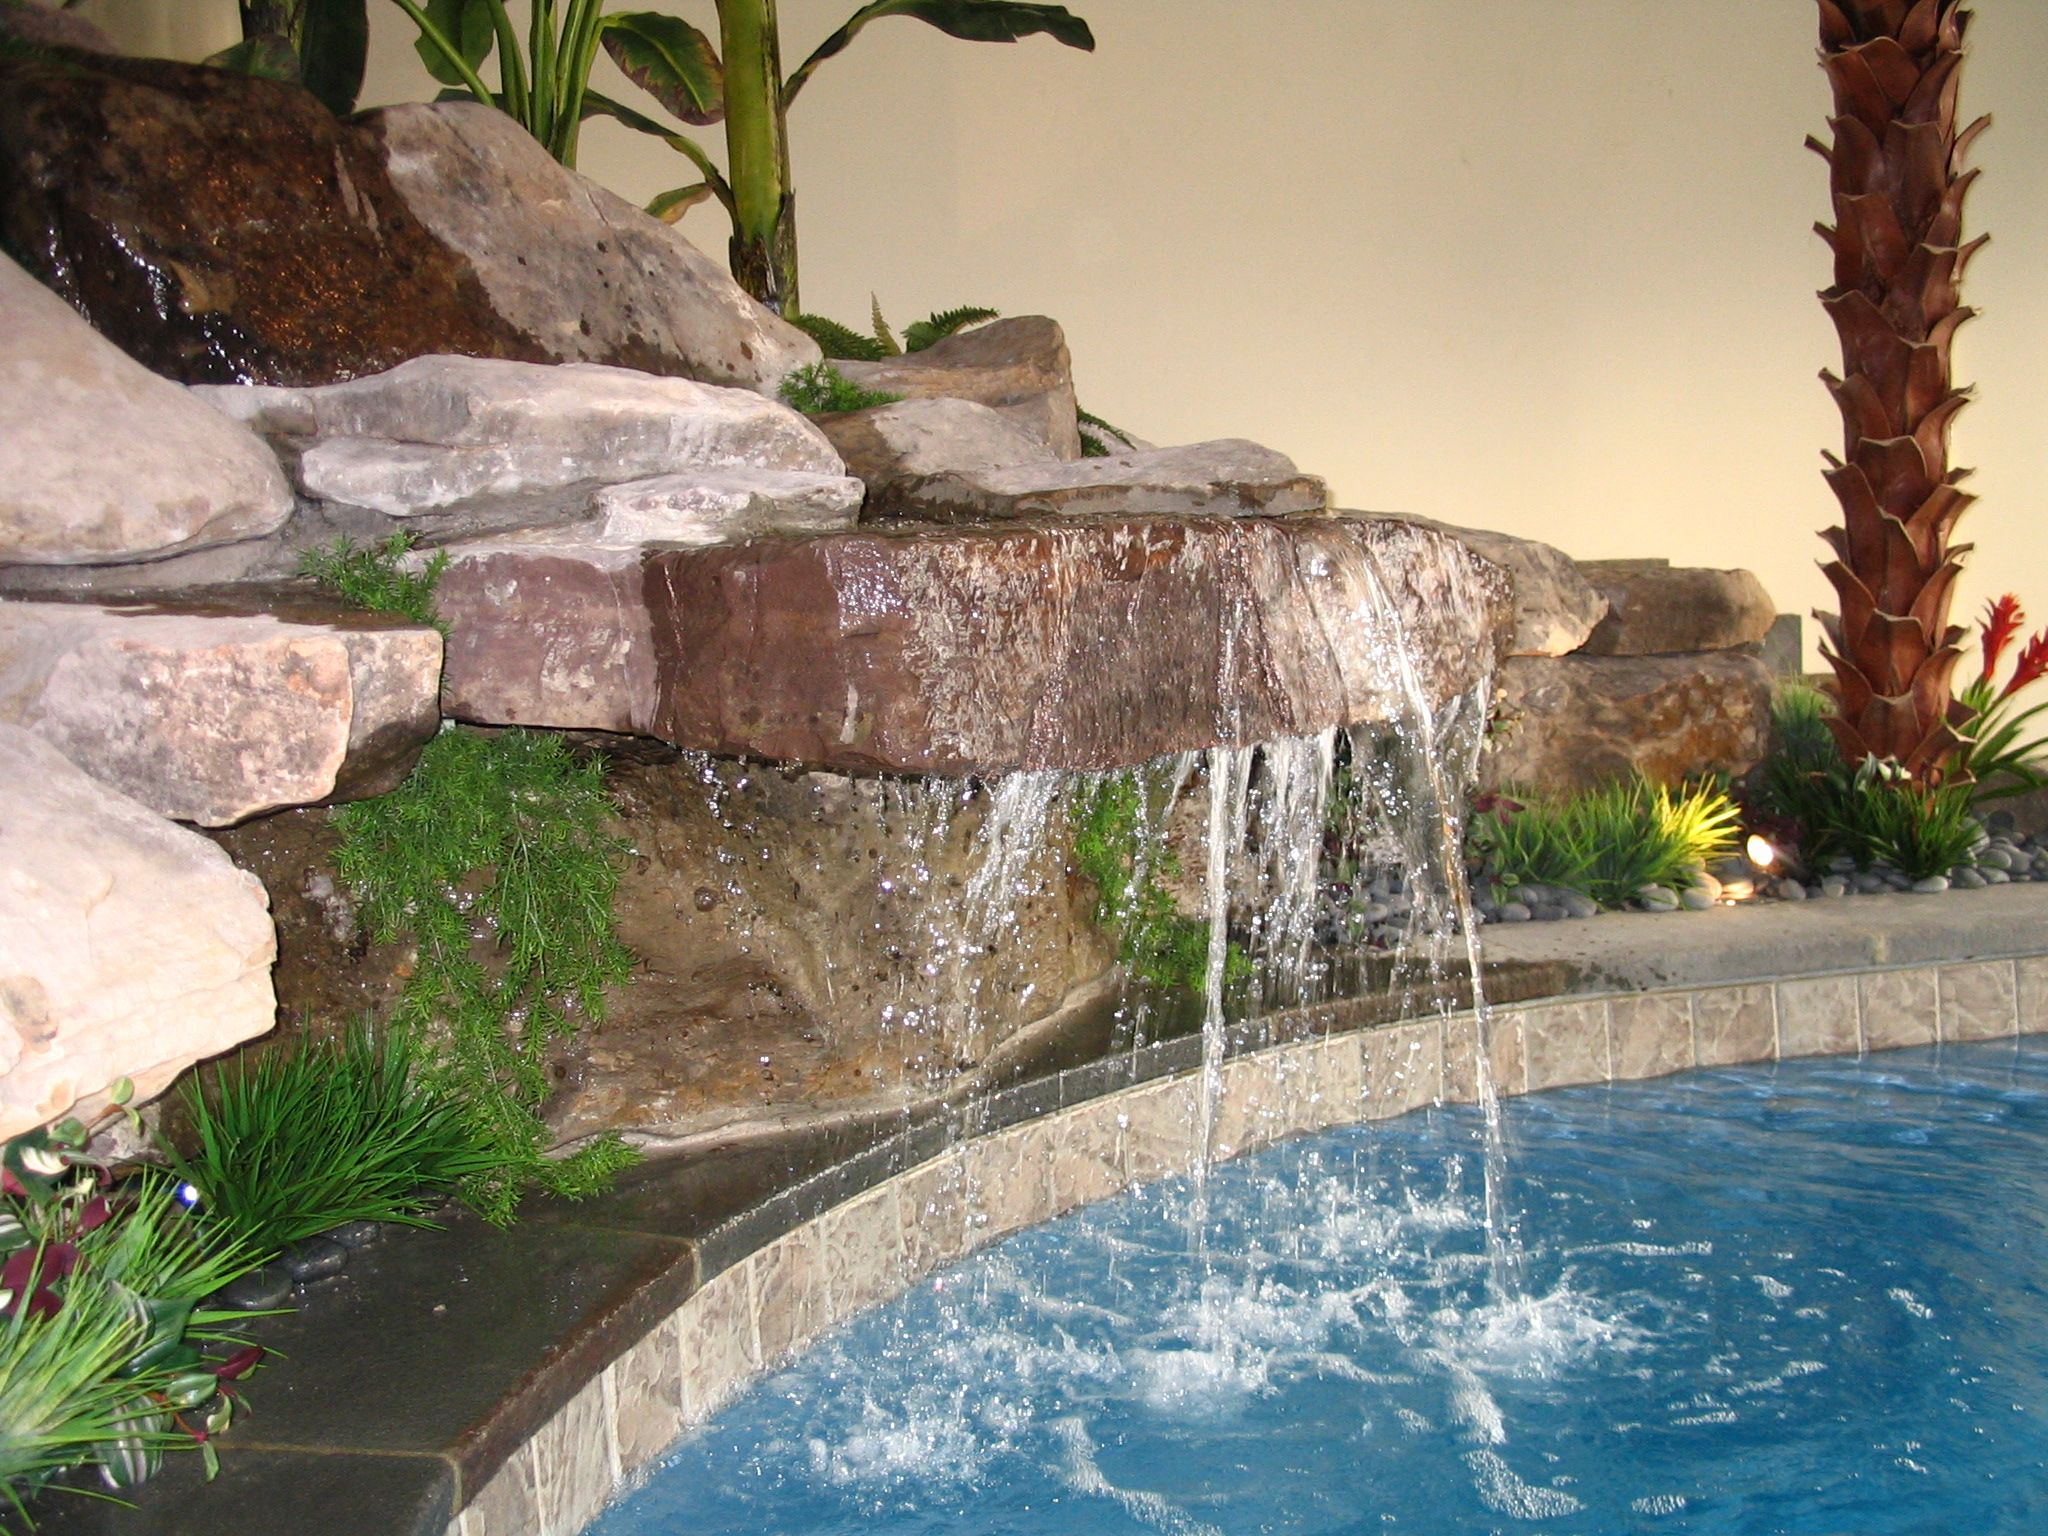 Aesthetic Indoor Waterfalls For Your House Decoration: Exotic Indoor  Waterfalls With Beautiful Small Garden